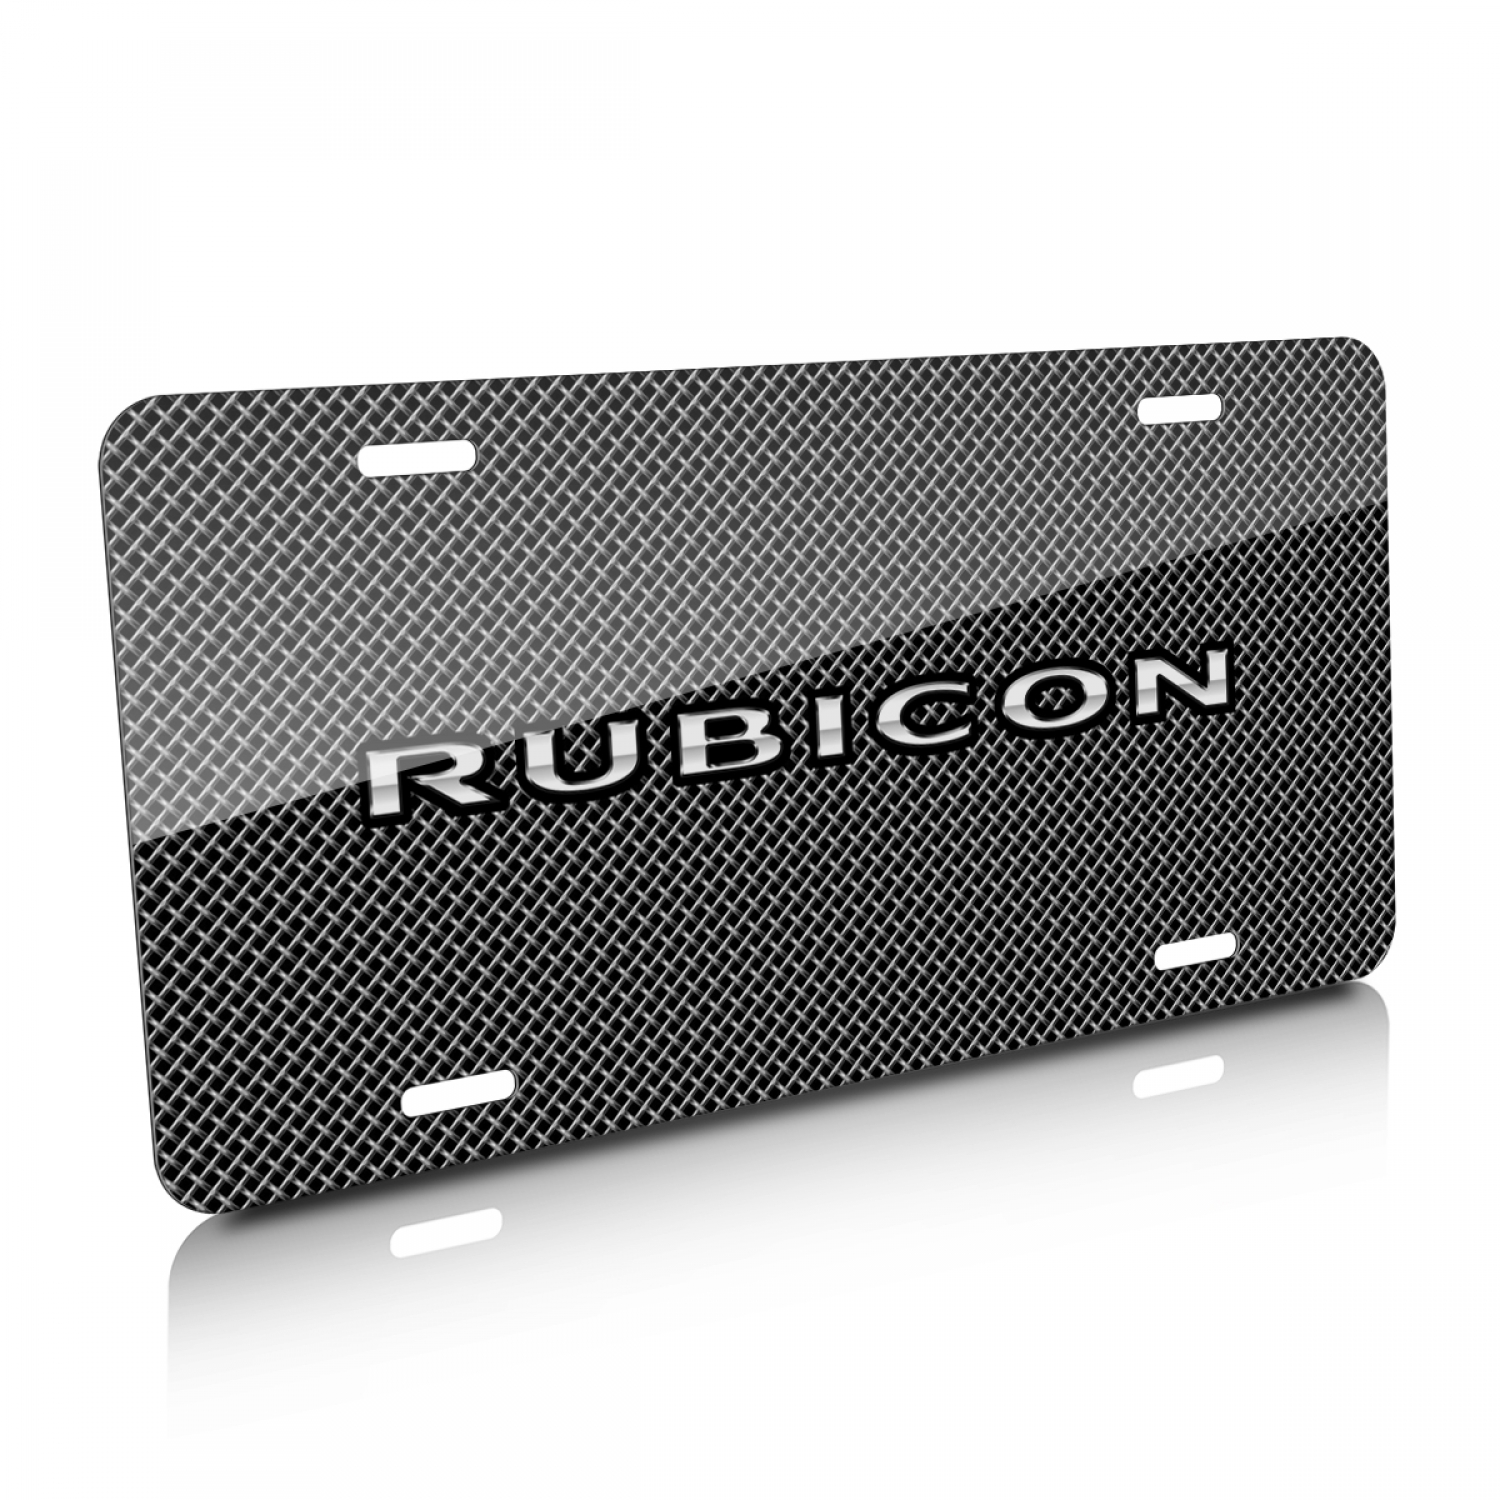 Jeep Rubicon Mesh Grill Graphic Aluminum License Plate